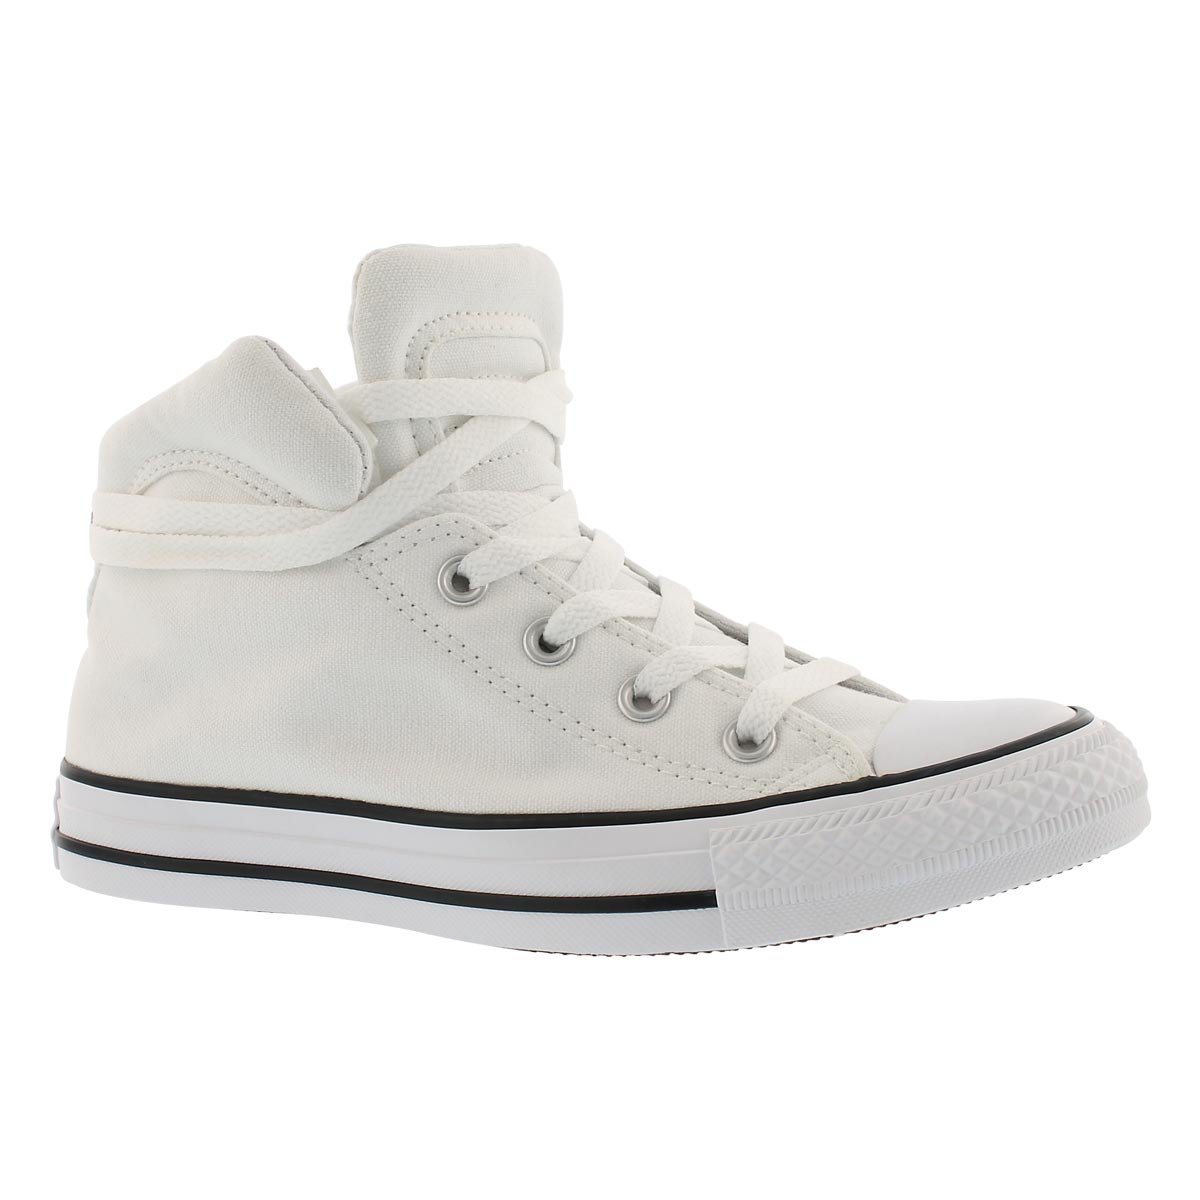 Women's CT ALL STAR BROOKLINE white high tops